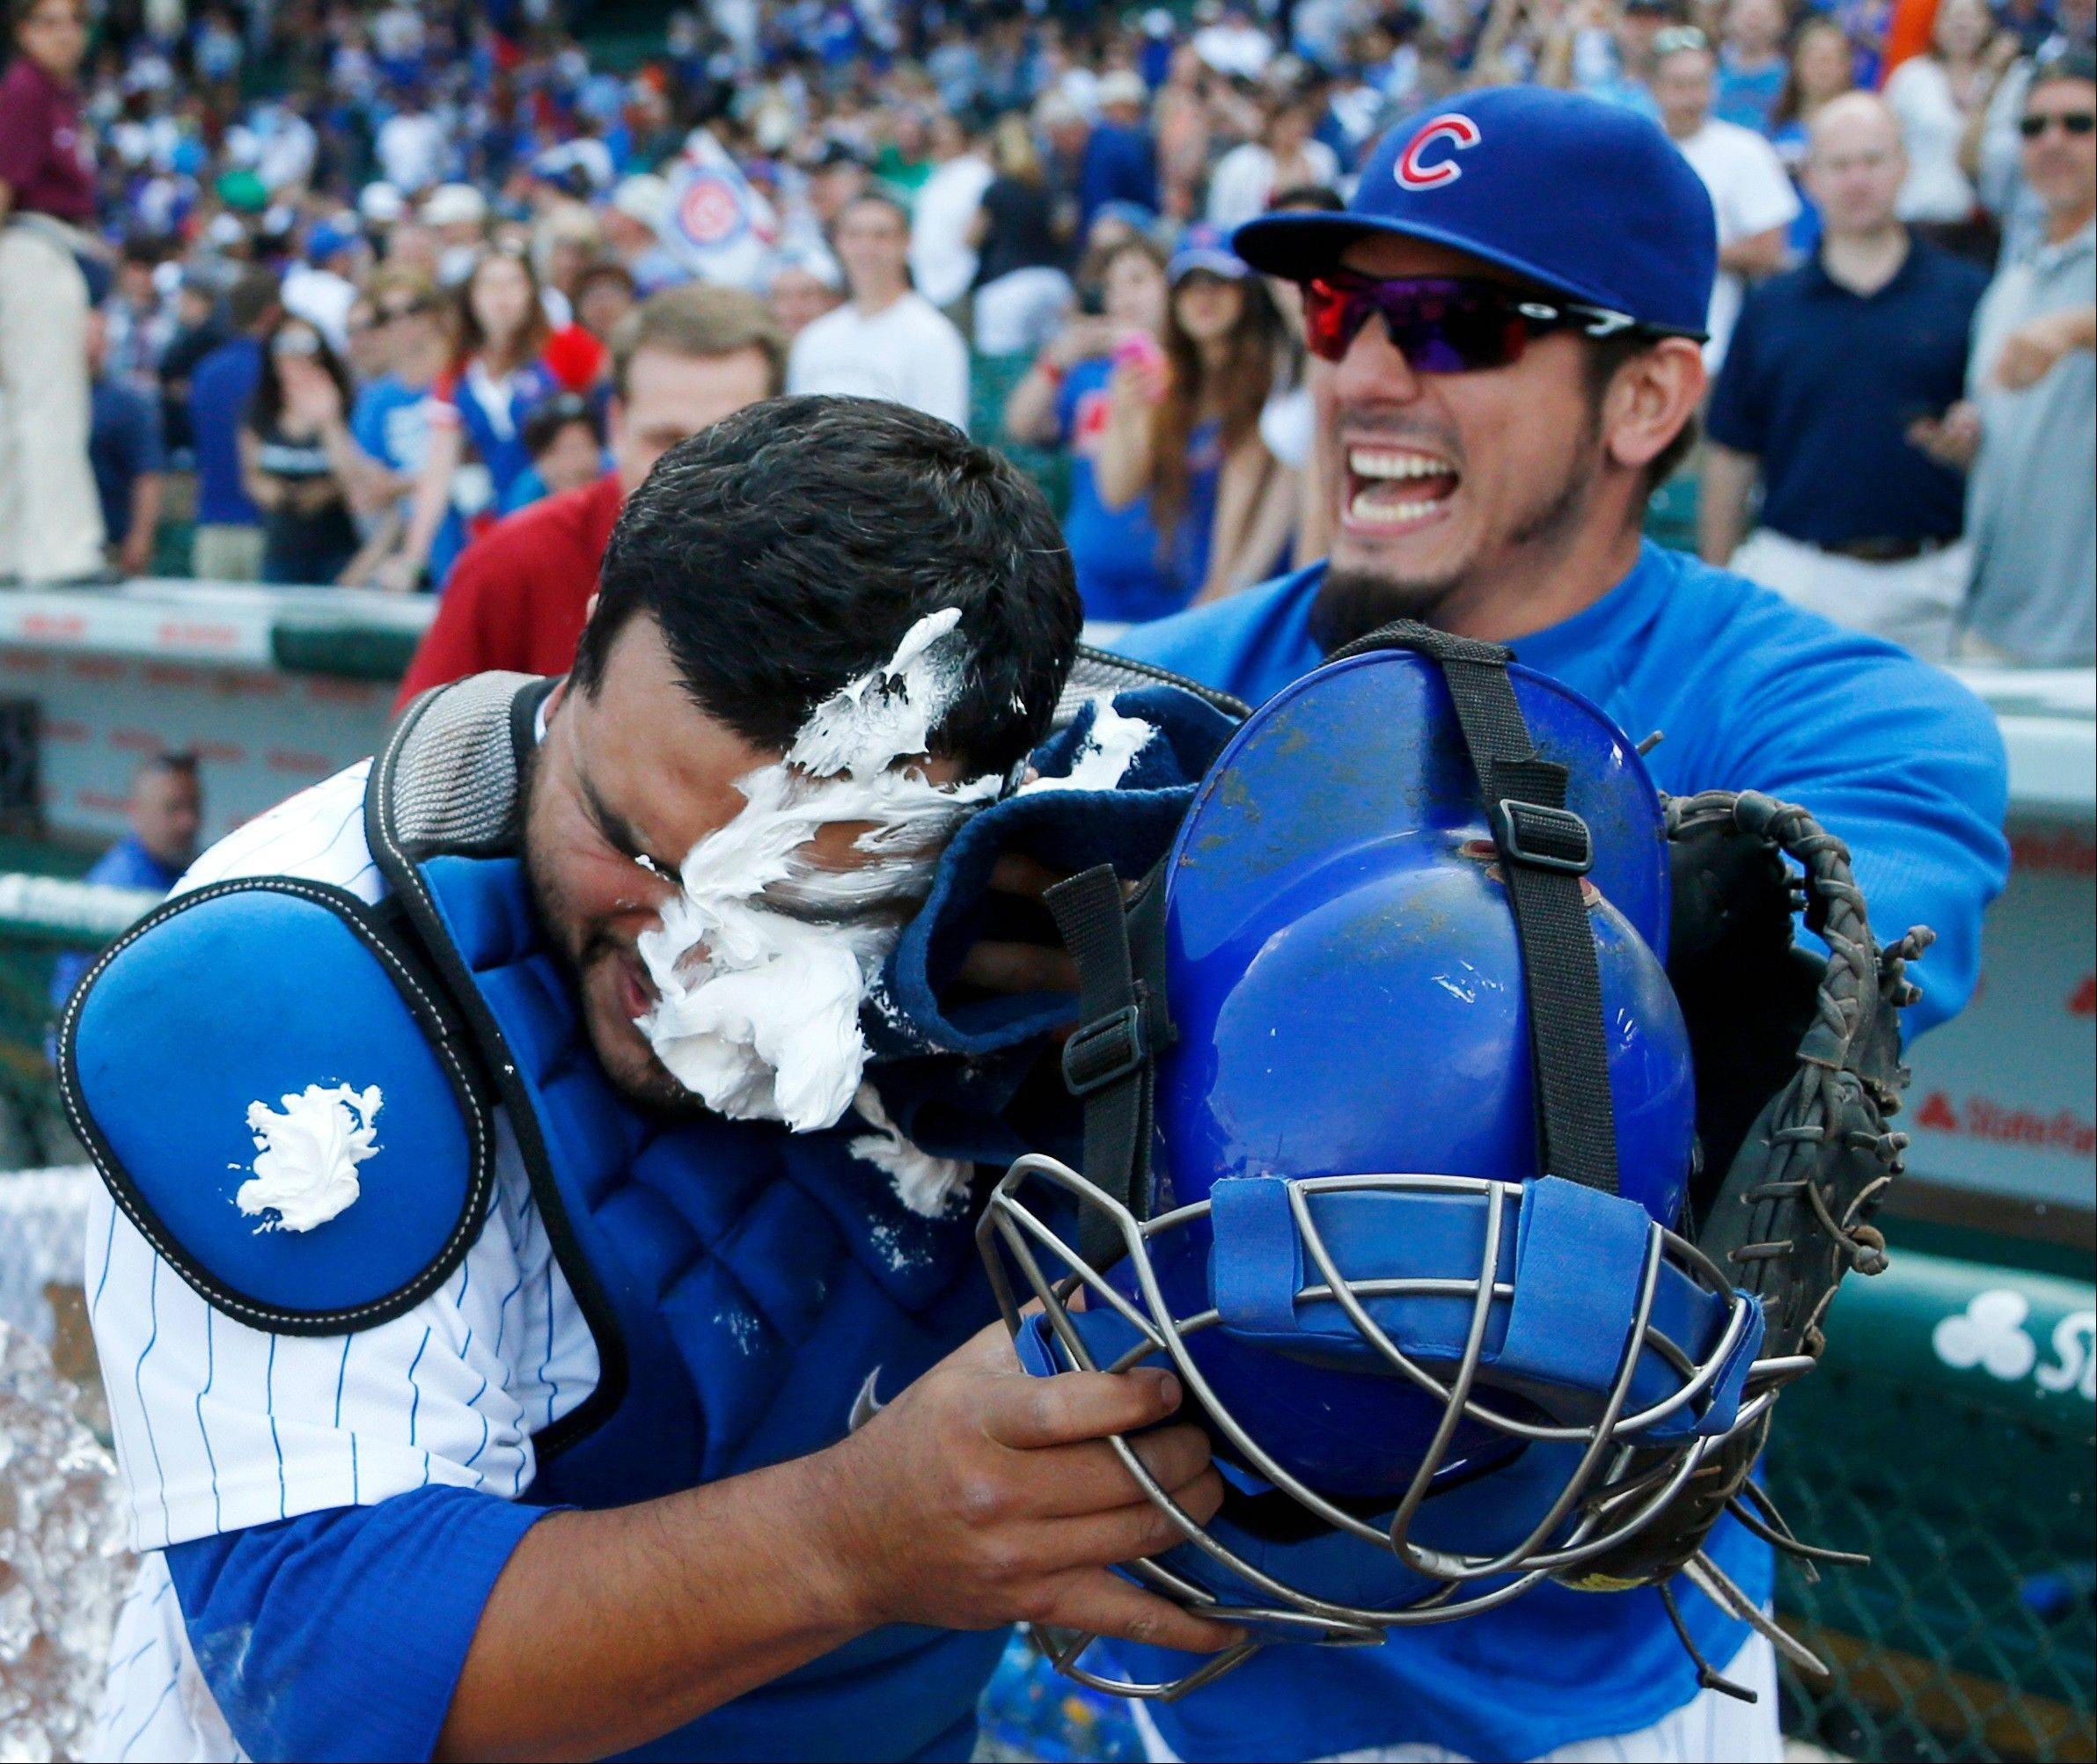 Matt Garza delivers a shaving cream pie to the face of catcher Dioner Navarro, who hit 3 home runs in the Cubs� 9-3 win over the White Sox at Wrigley Field on Wednesday.